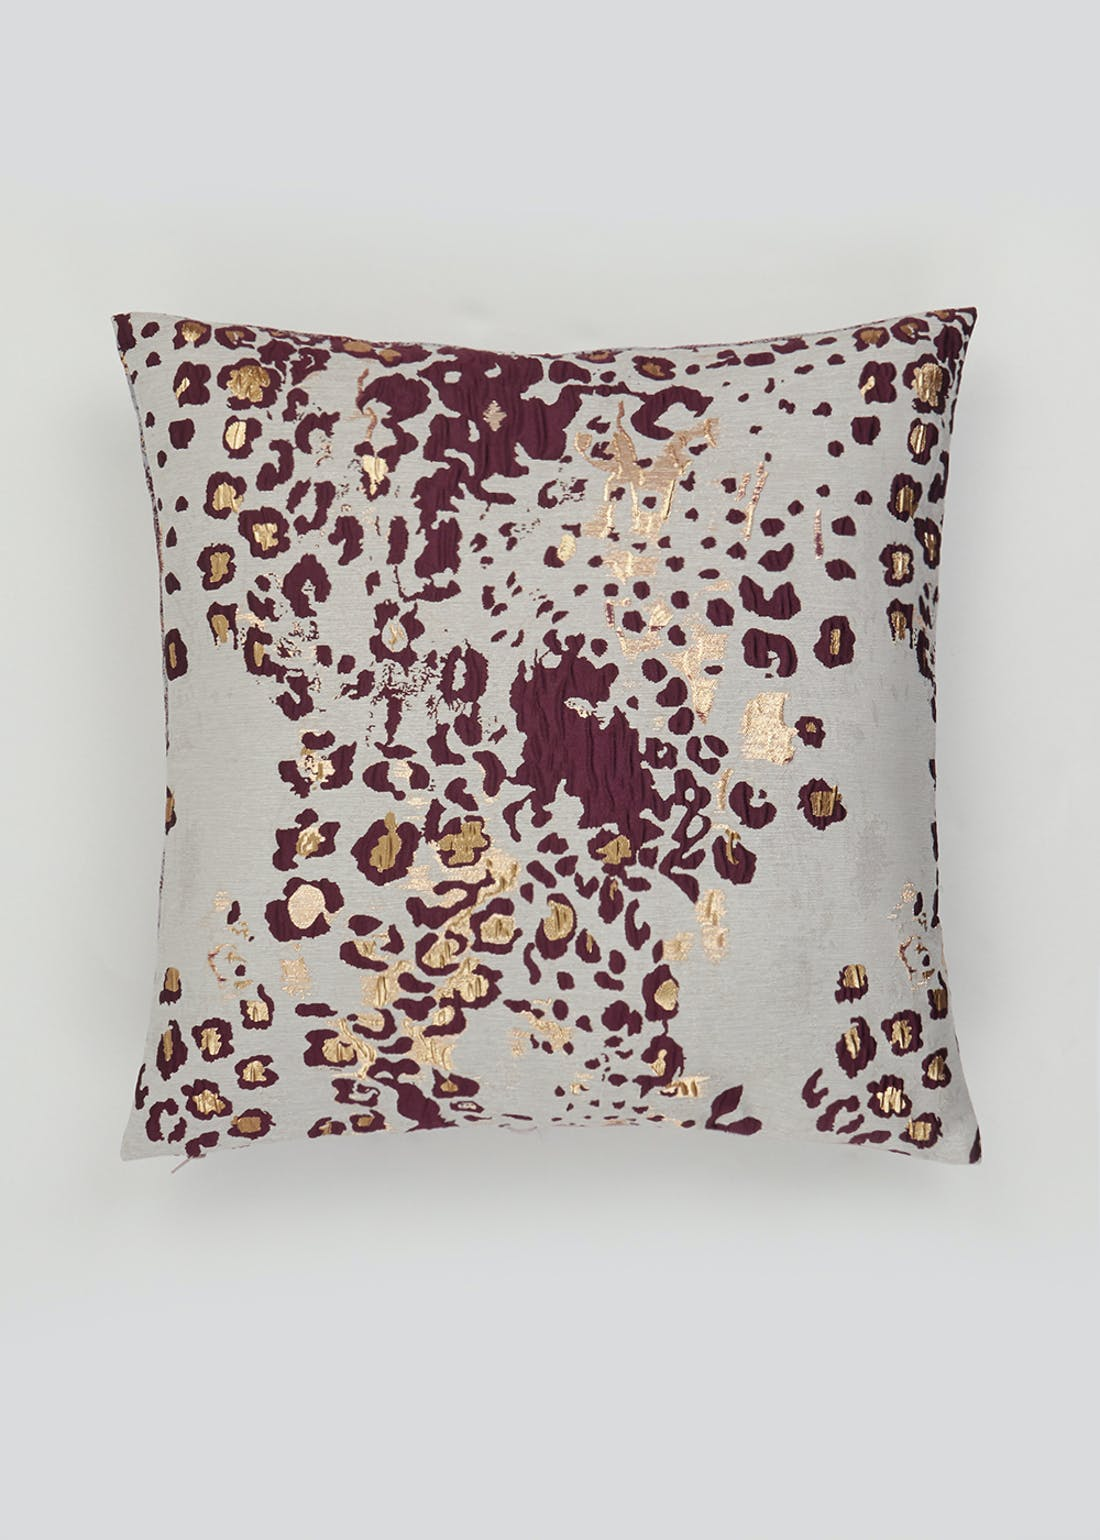 Metallic Leopard Print Cushion (46cm x 46cm)